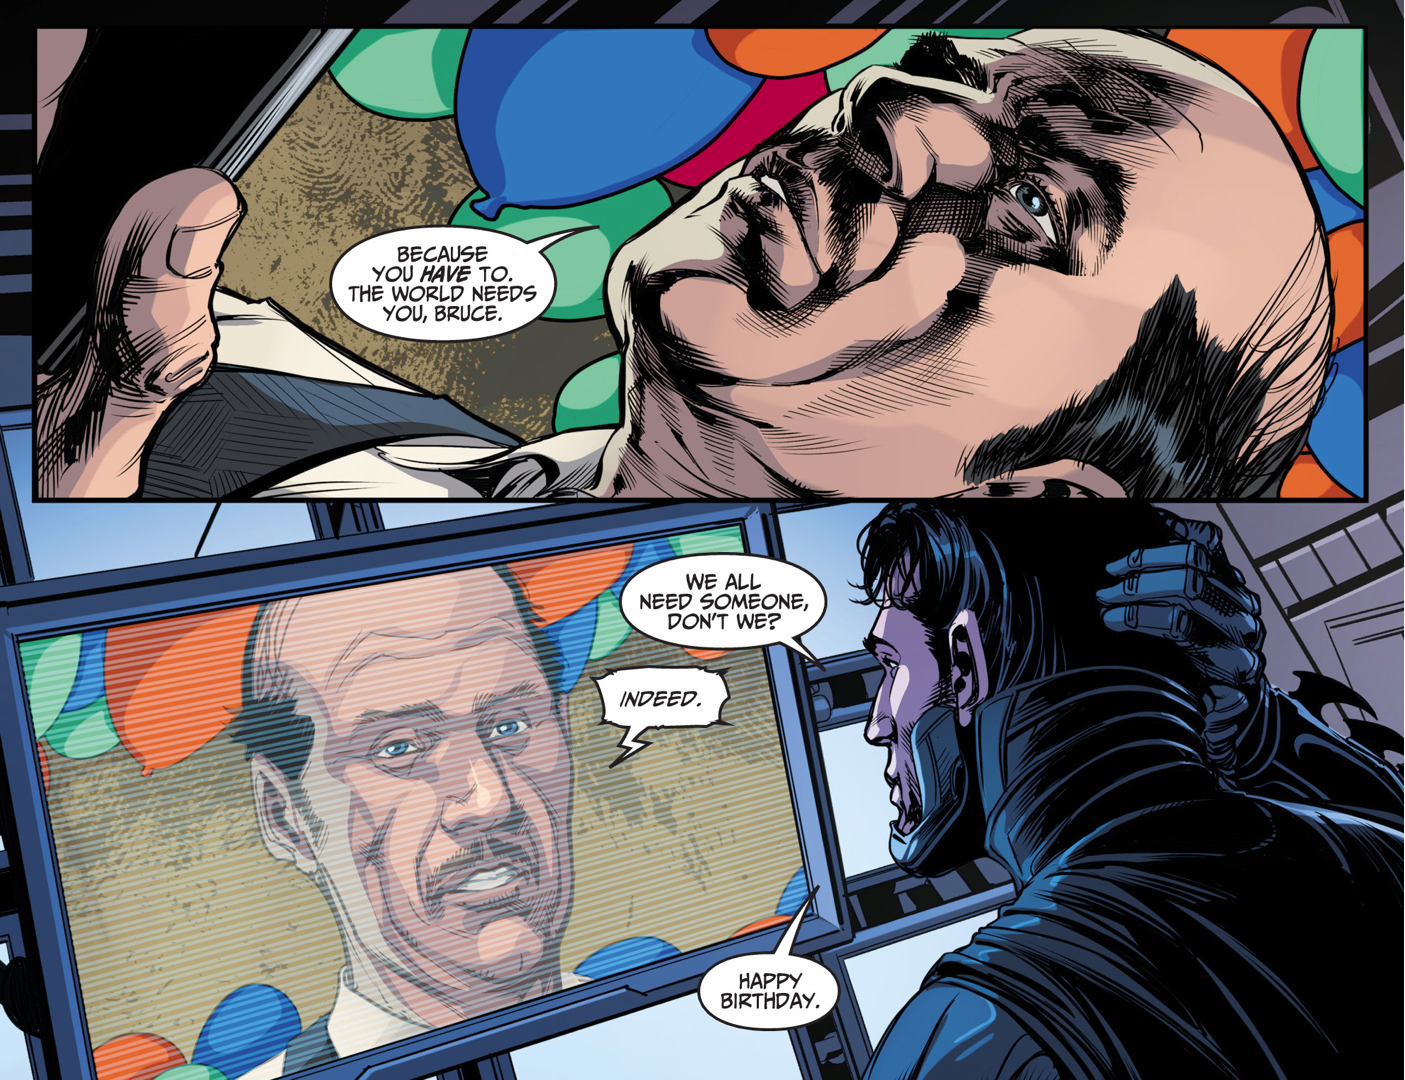 Batman Celebrates Alfred Pennyworth's Birthday (Injustice Gods Among Us)